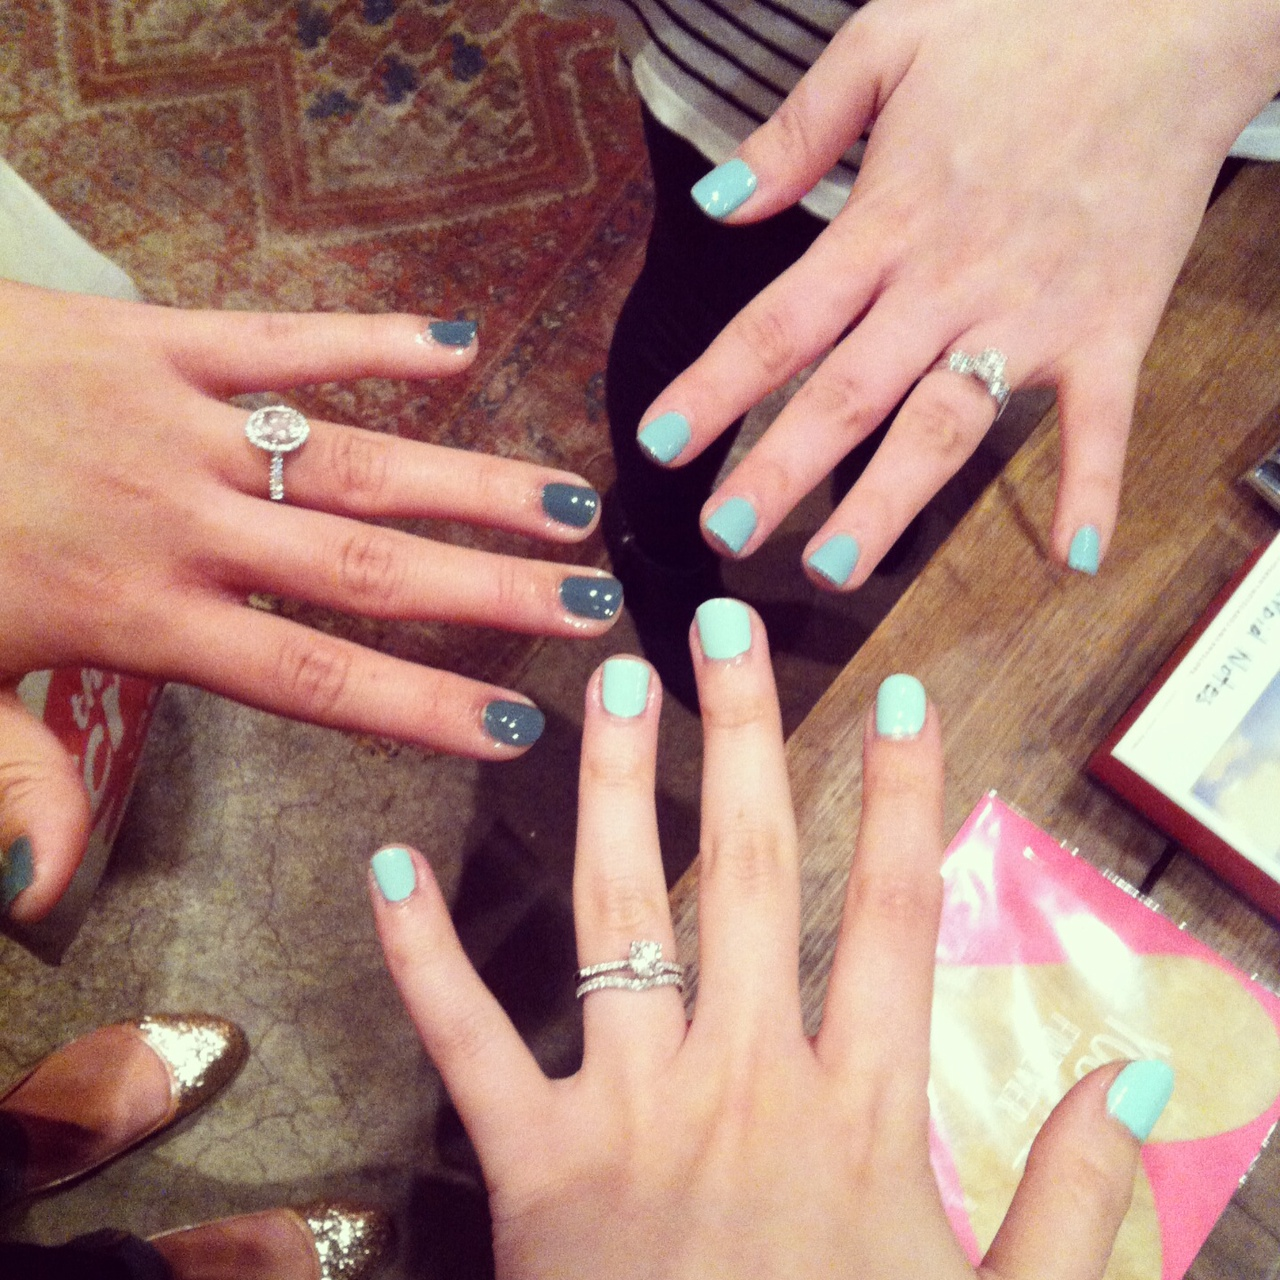 Ended the night by getting complimentary manicures by the ladies of  Olive and June